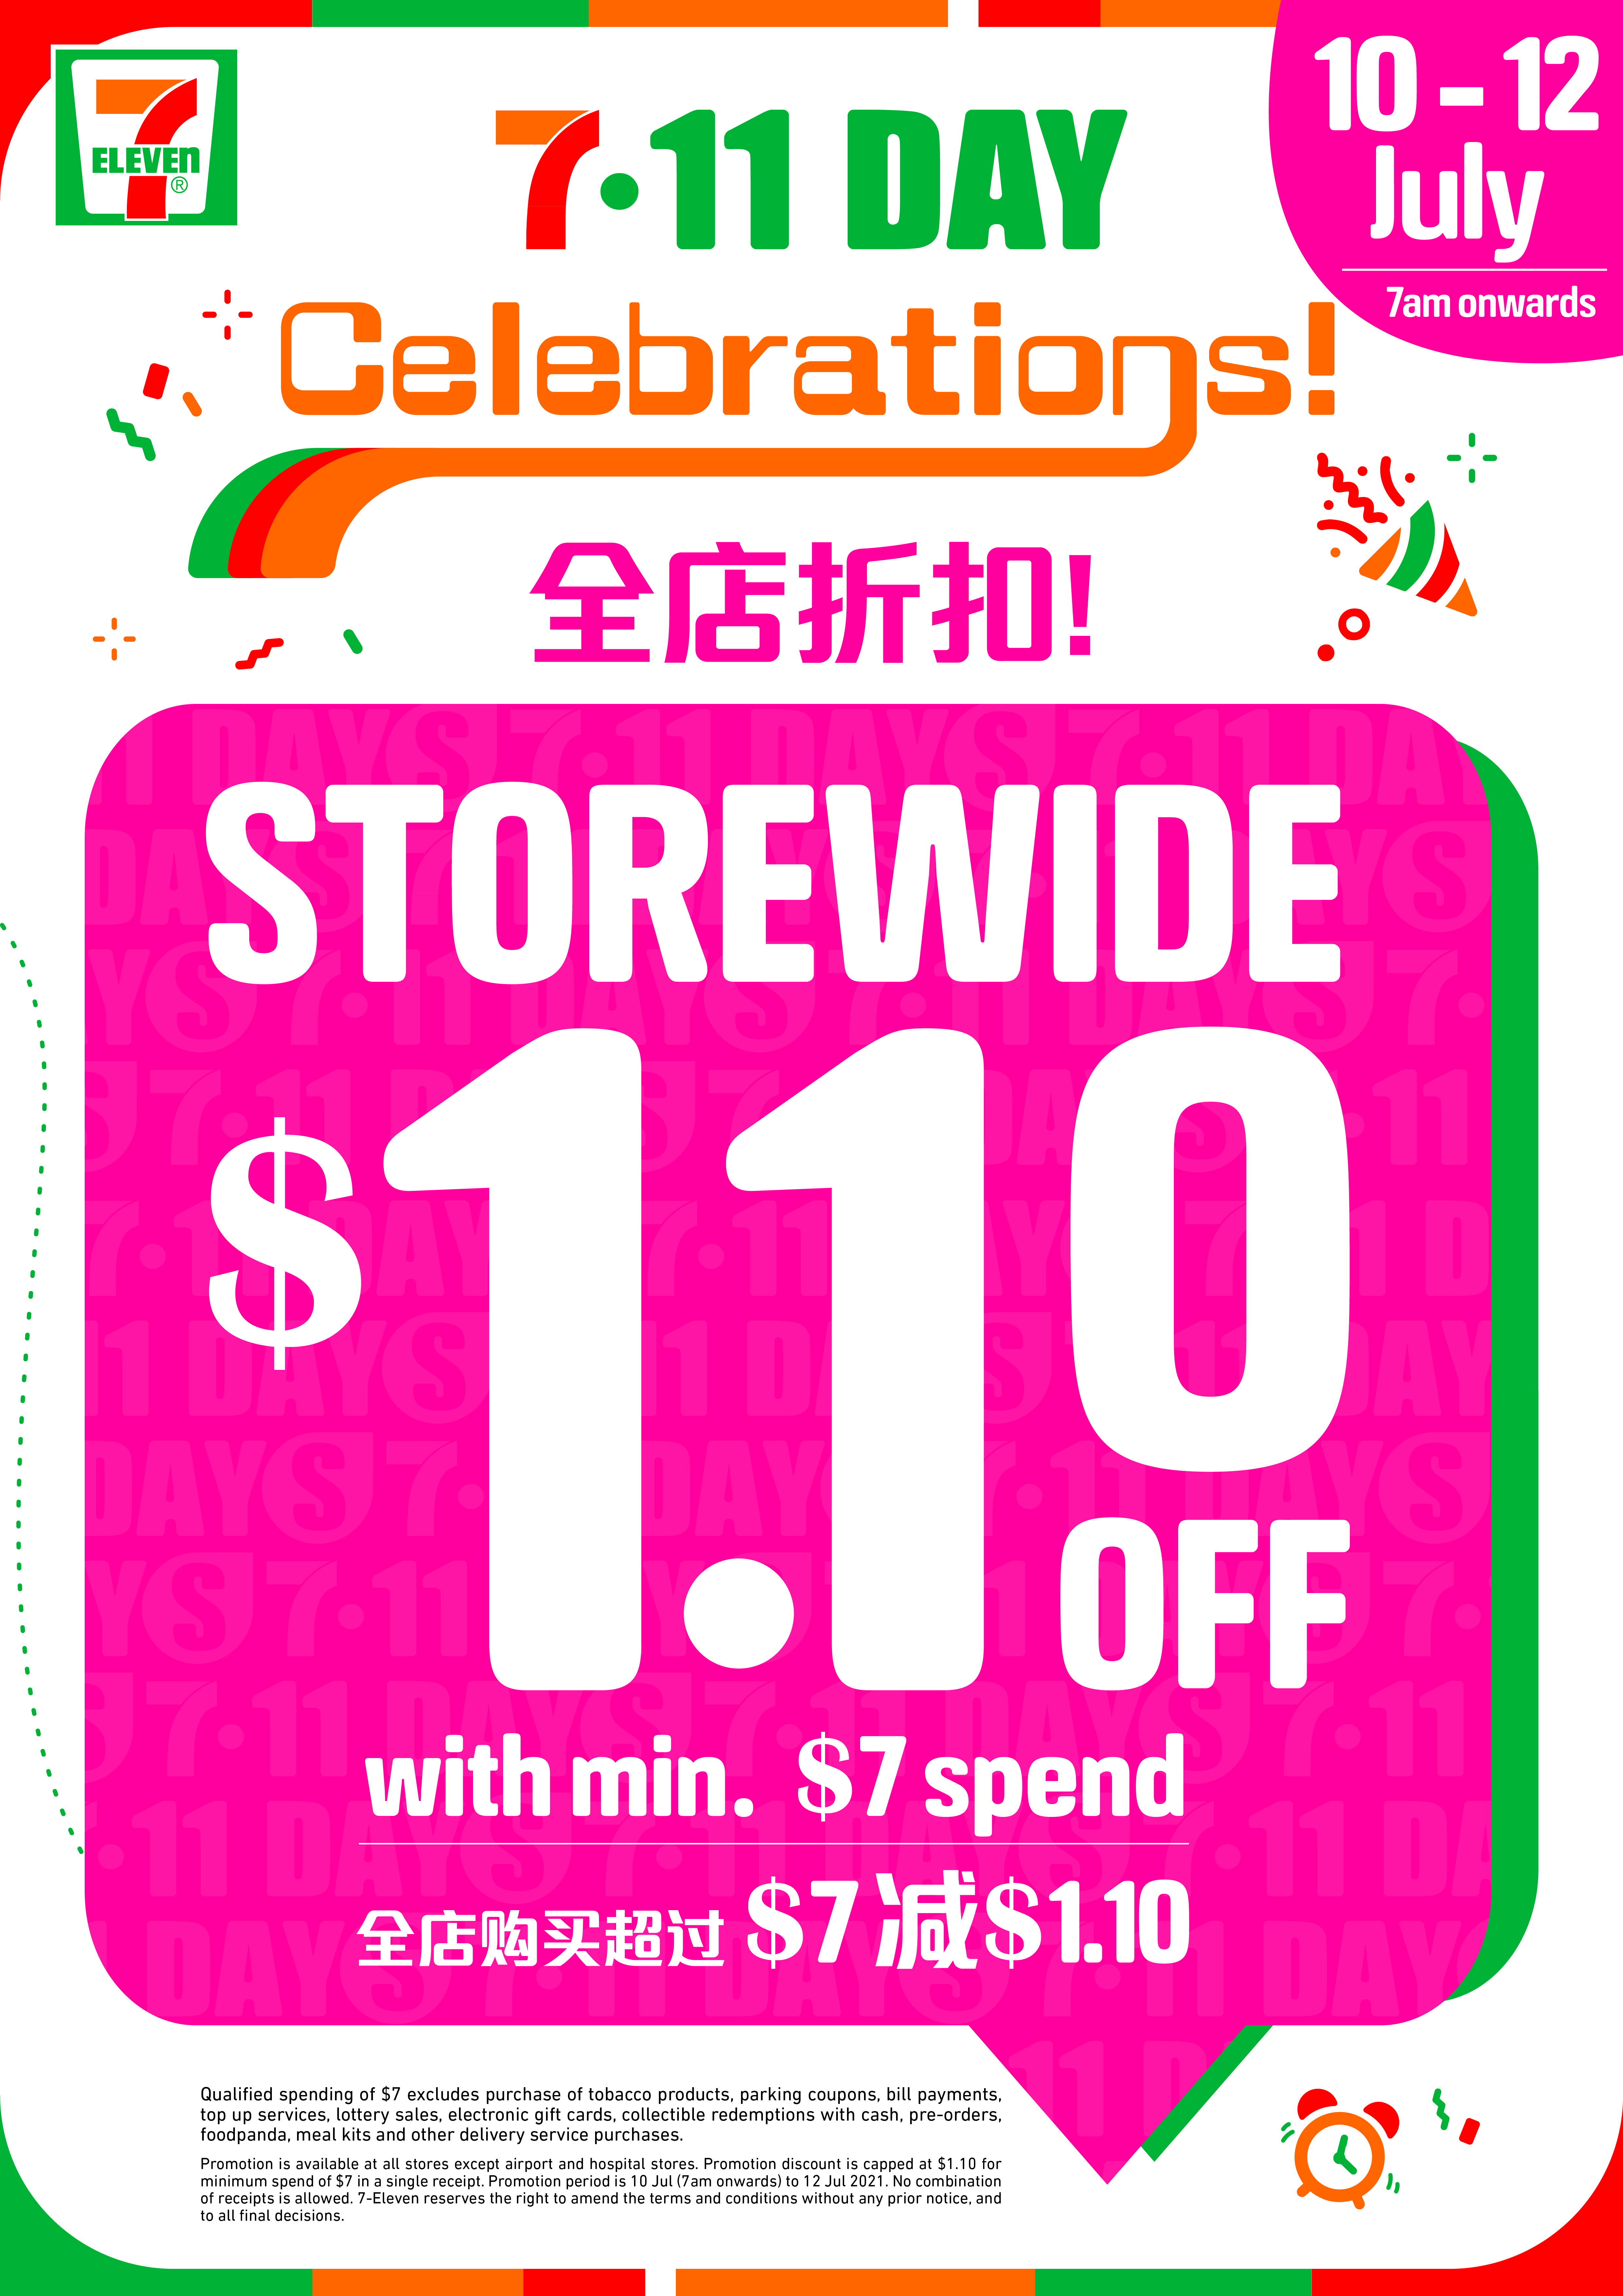 Celebrate 7.11 Day with STOREWIDE PROMOTIONS and new colourful Ready-to-Eat range plus sweet Japanese treats